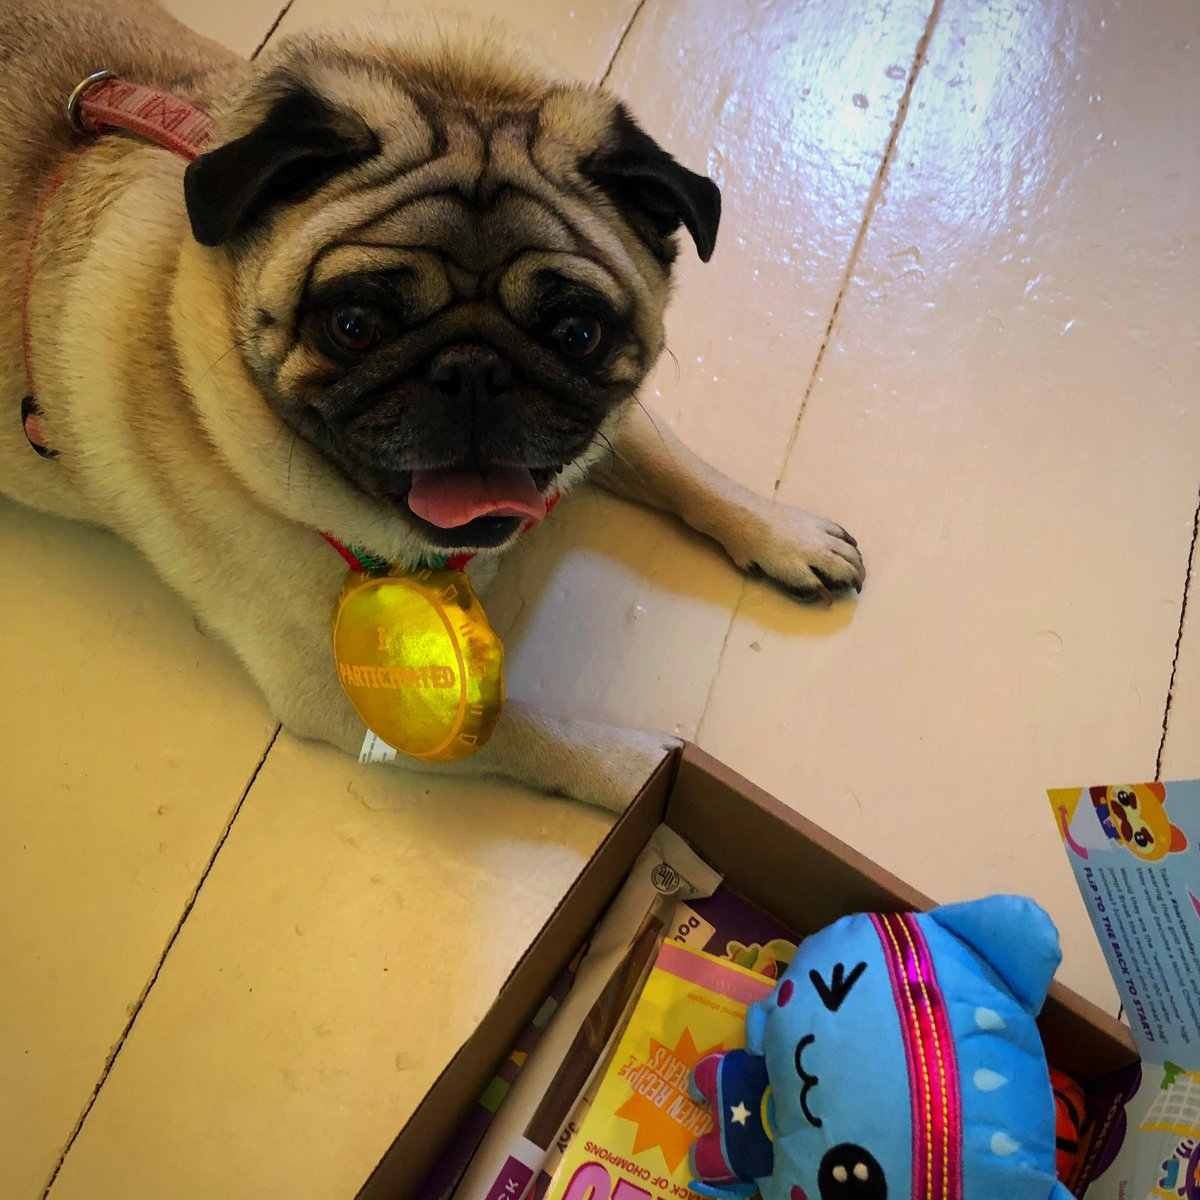 Marzipan is #1  ... in our eyes.  Thanks to #PugChat hosted by the pawsomess host @HamiltonPug for this awesome @barkbox .    WATCH THE UNBOXING and let me know who's more excited me or Marzipan. https://youtu.be/mLBvWa52unM.   #barkboxdaypic.twitter.com/sS4w6PxKnC